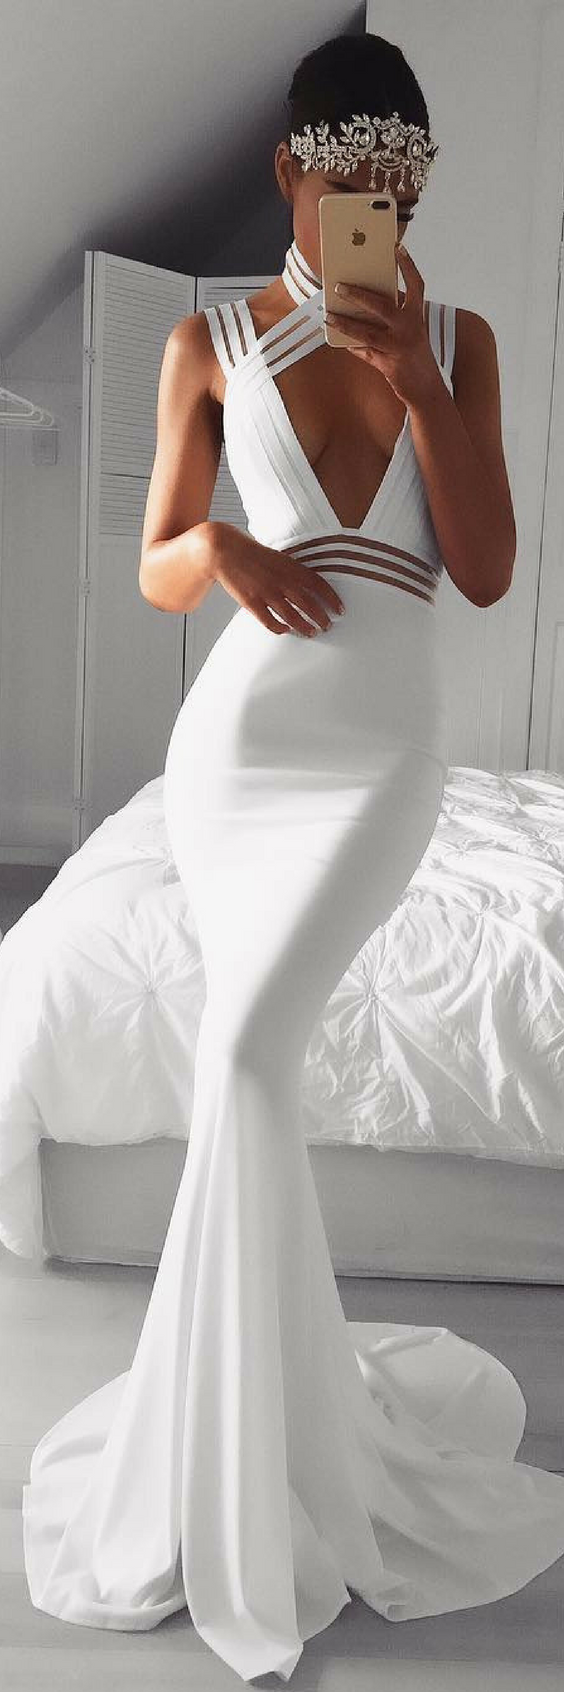 Amazing gown summer outfit idea by emma spiliopoulos